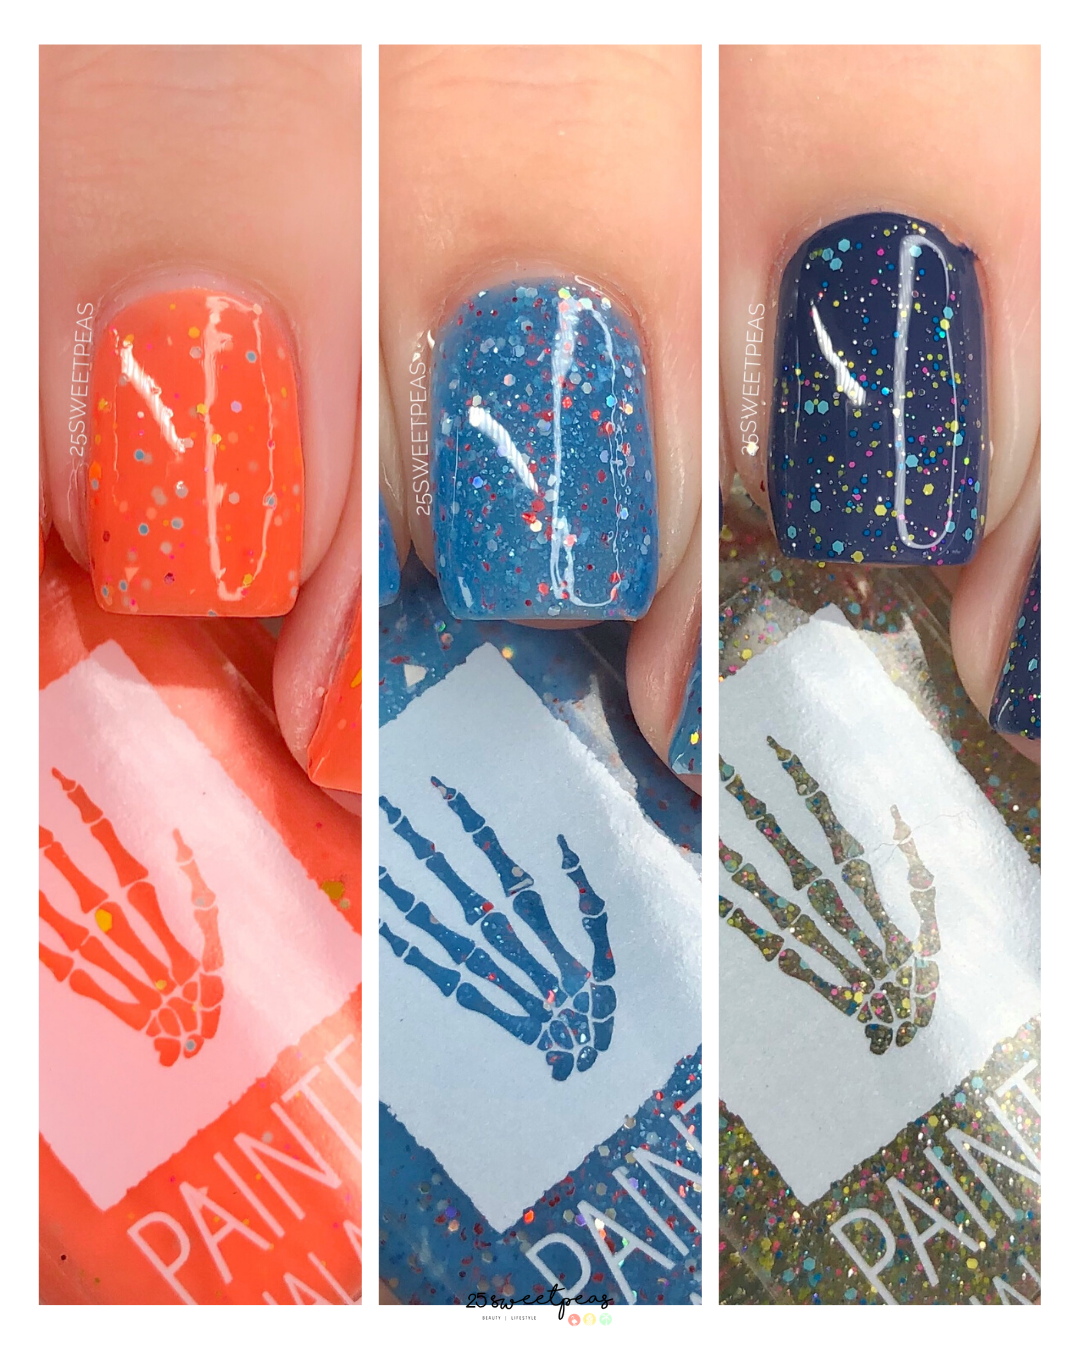 Painted Phalanges Celebrate Collection